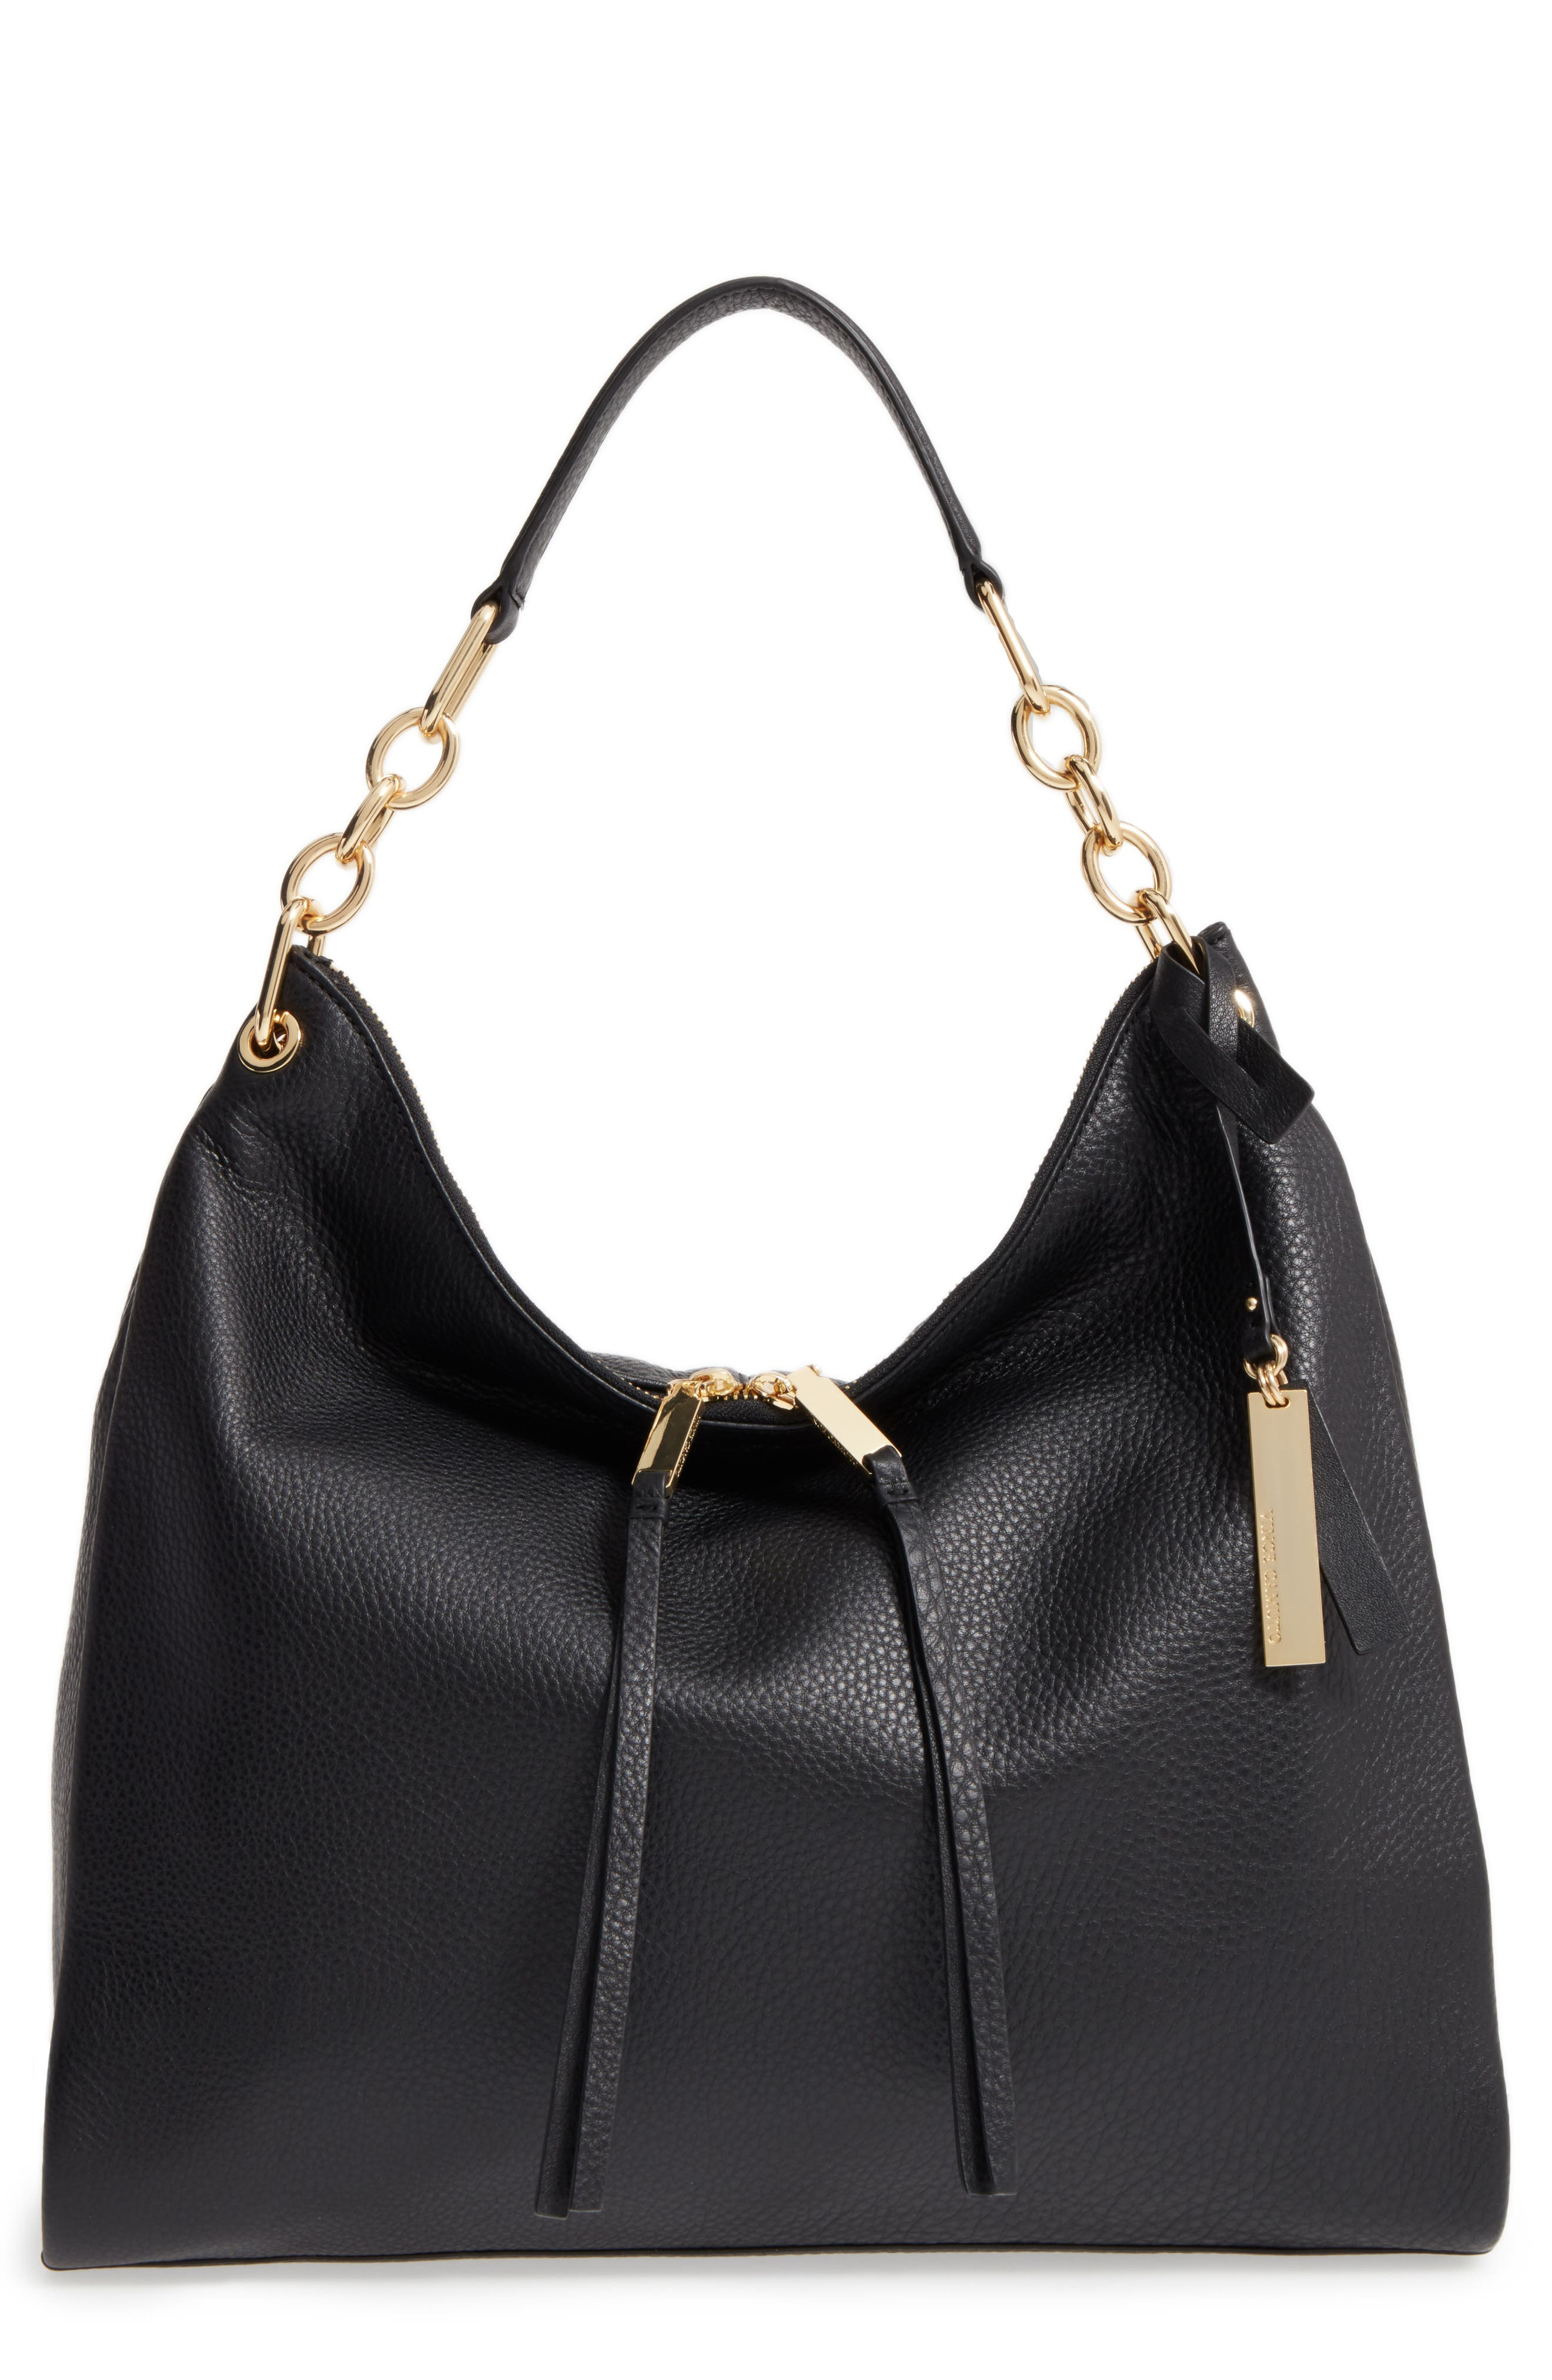 Main Image - Vince Camuto Avin Leather Hobo